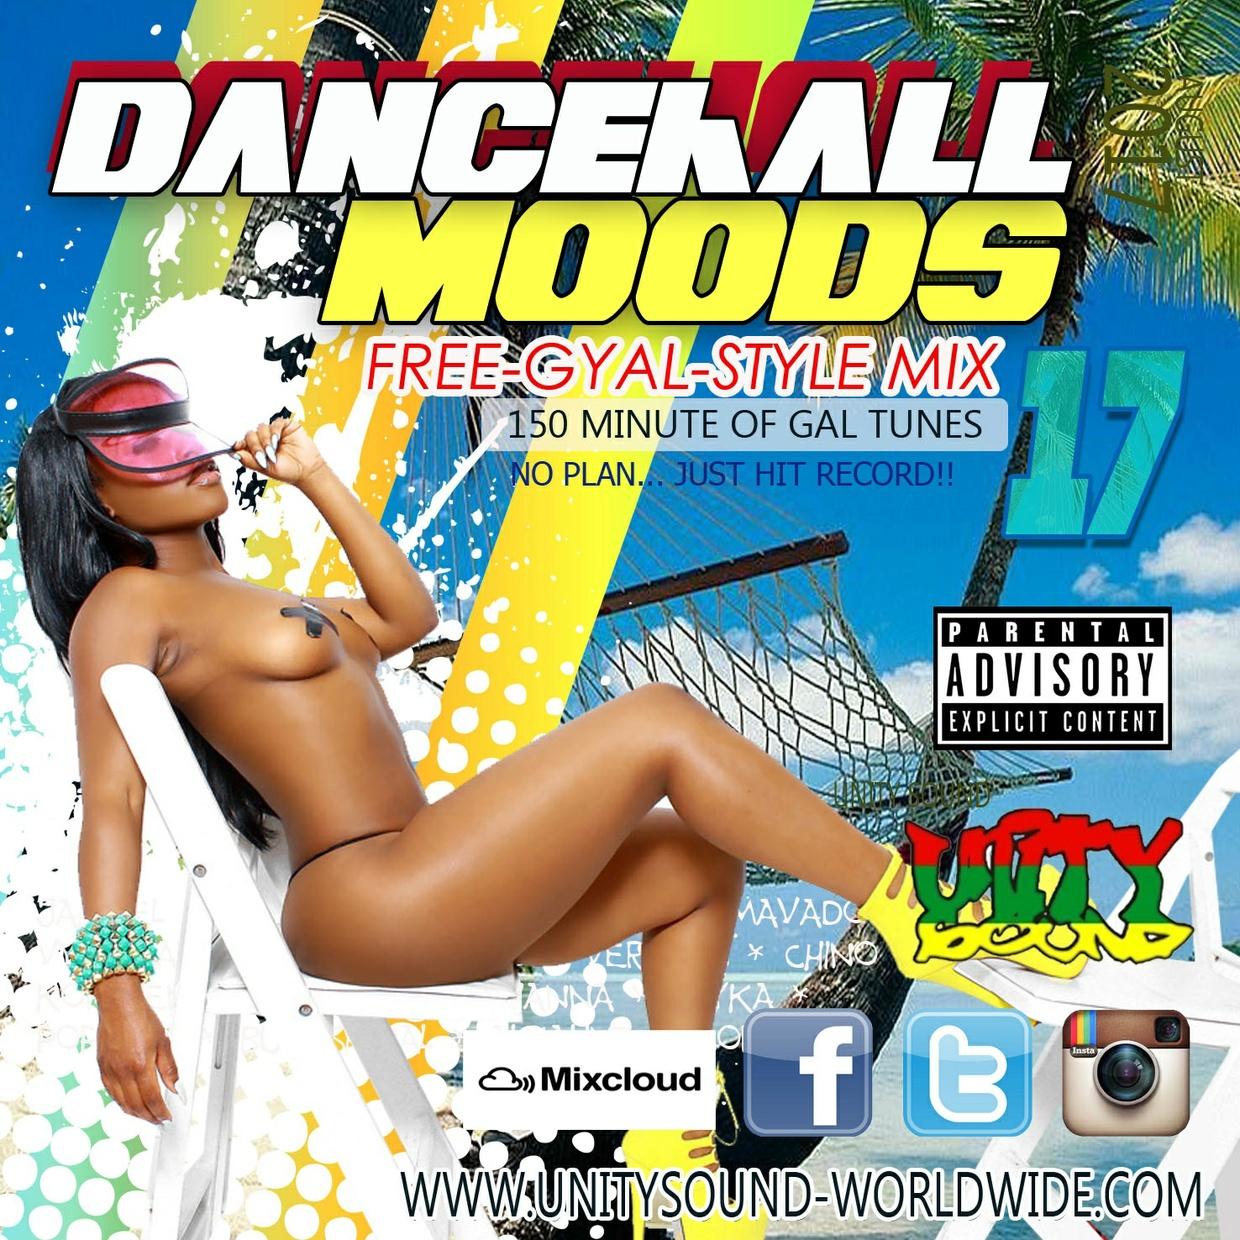 [Multi-Tracked Download] Dancehall Moods 17 - Free Gyal Style Mix - 2017